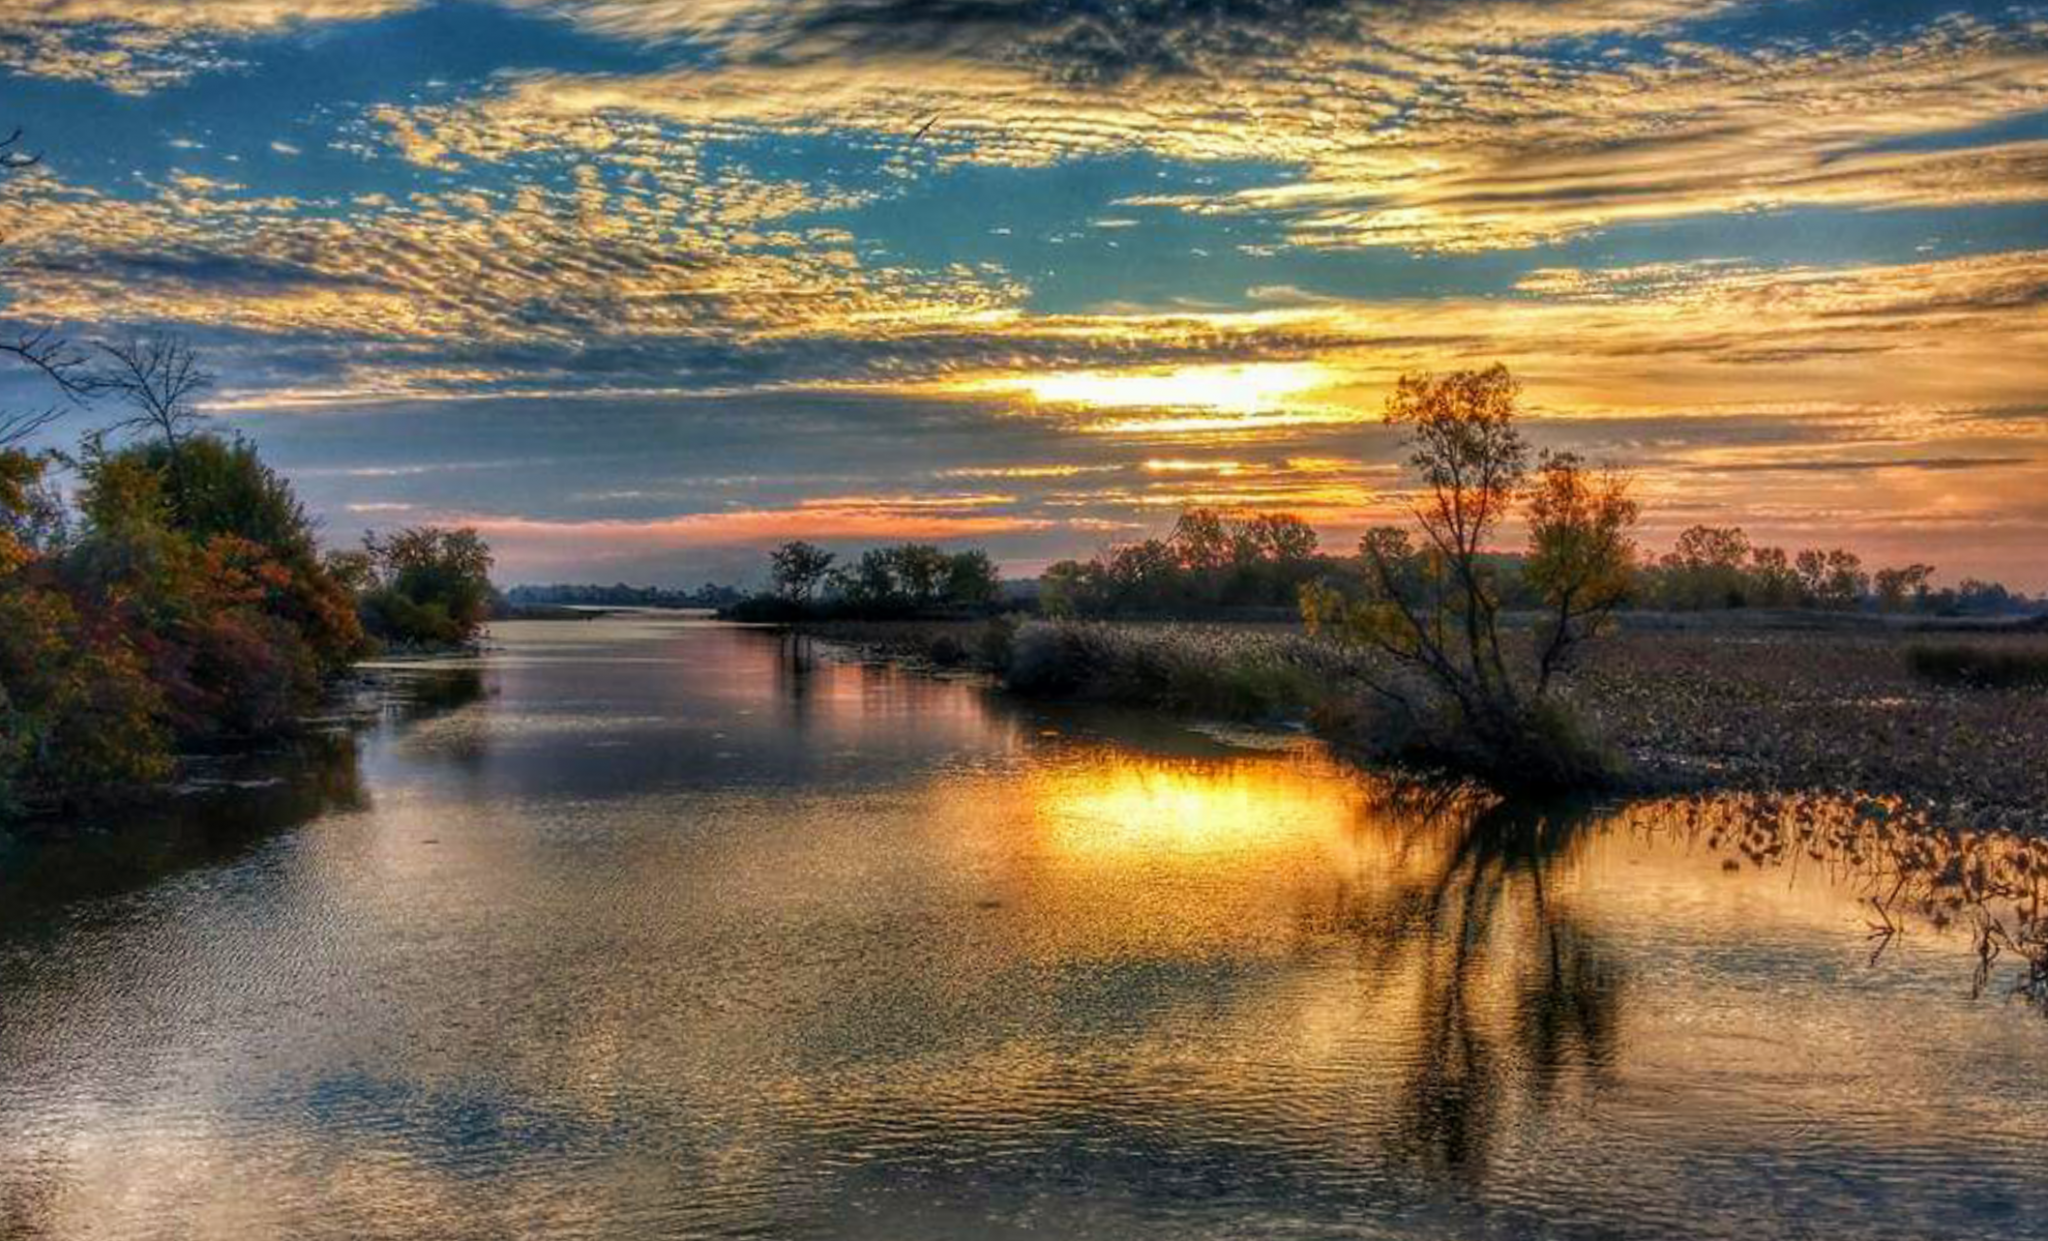 """Dave Smith's """"Crane Creek Sunrise"""" won the 2021 Best of Show Award in the 2021 Ottawa National Wildlife Refuge Photo Contest. The photo was taken on the ONWR Wildlife Drive. Cast a vote for the People's Choice Award at friendsofottawanwr.org."""